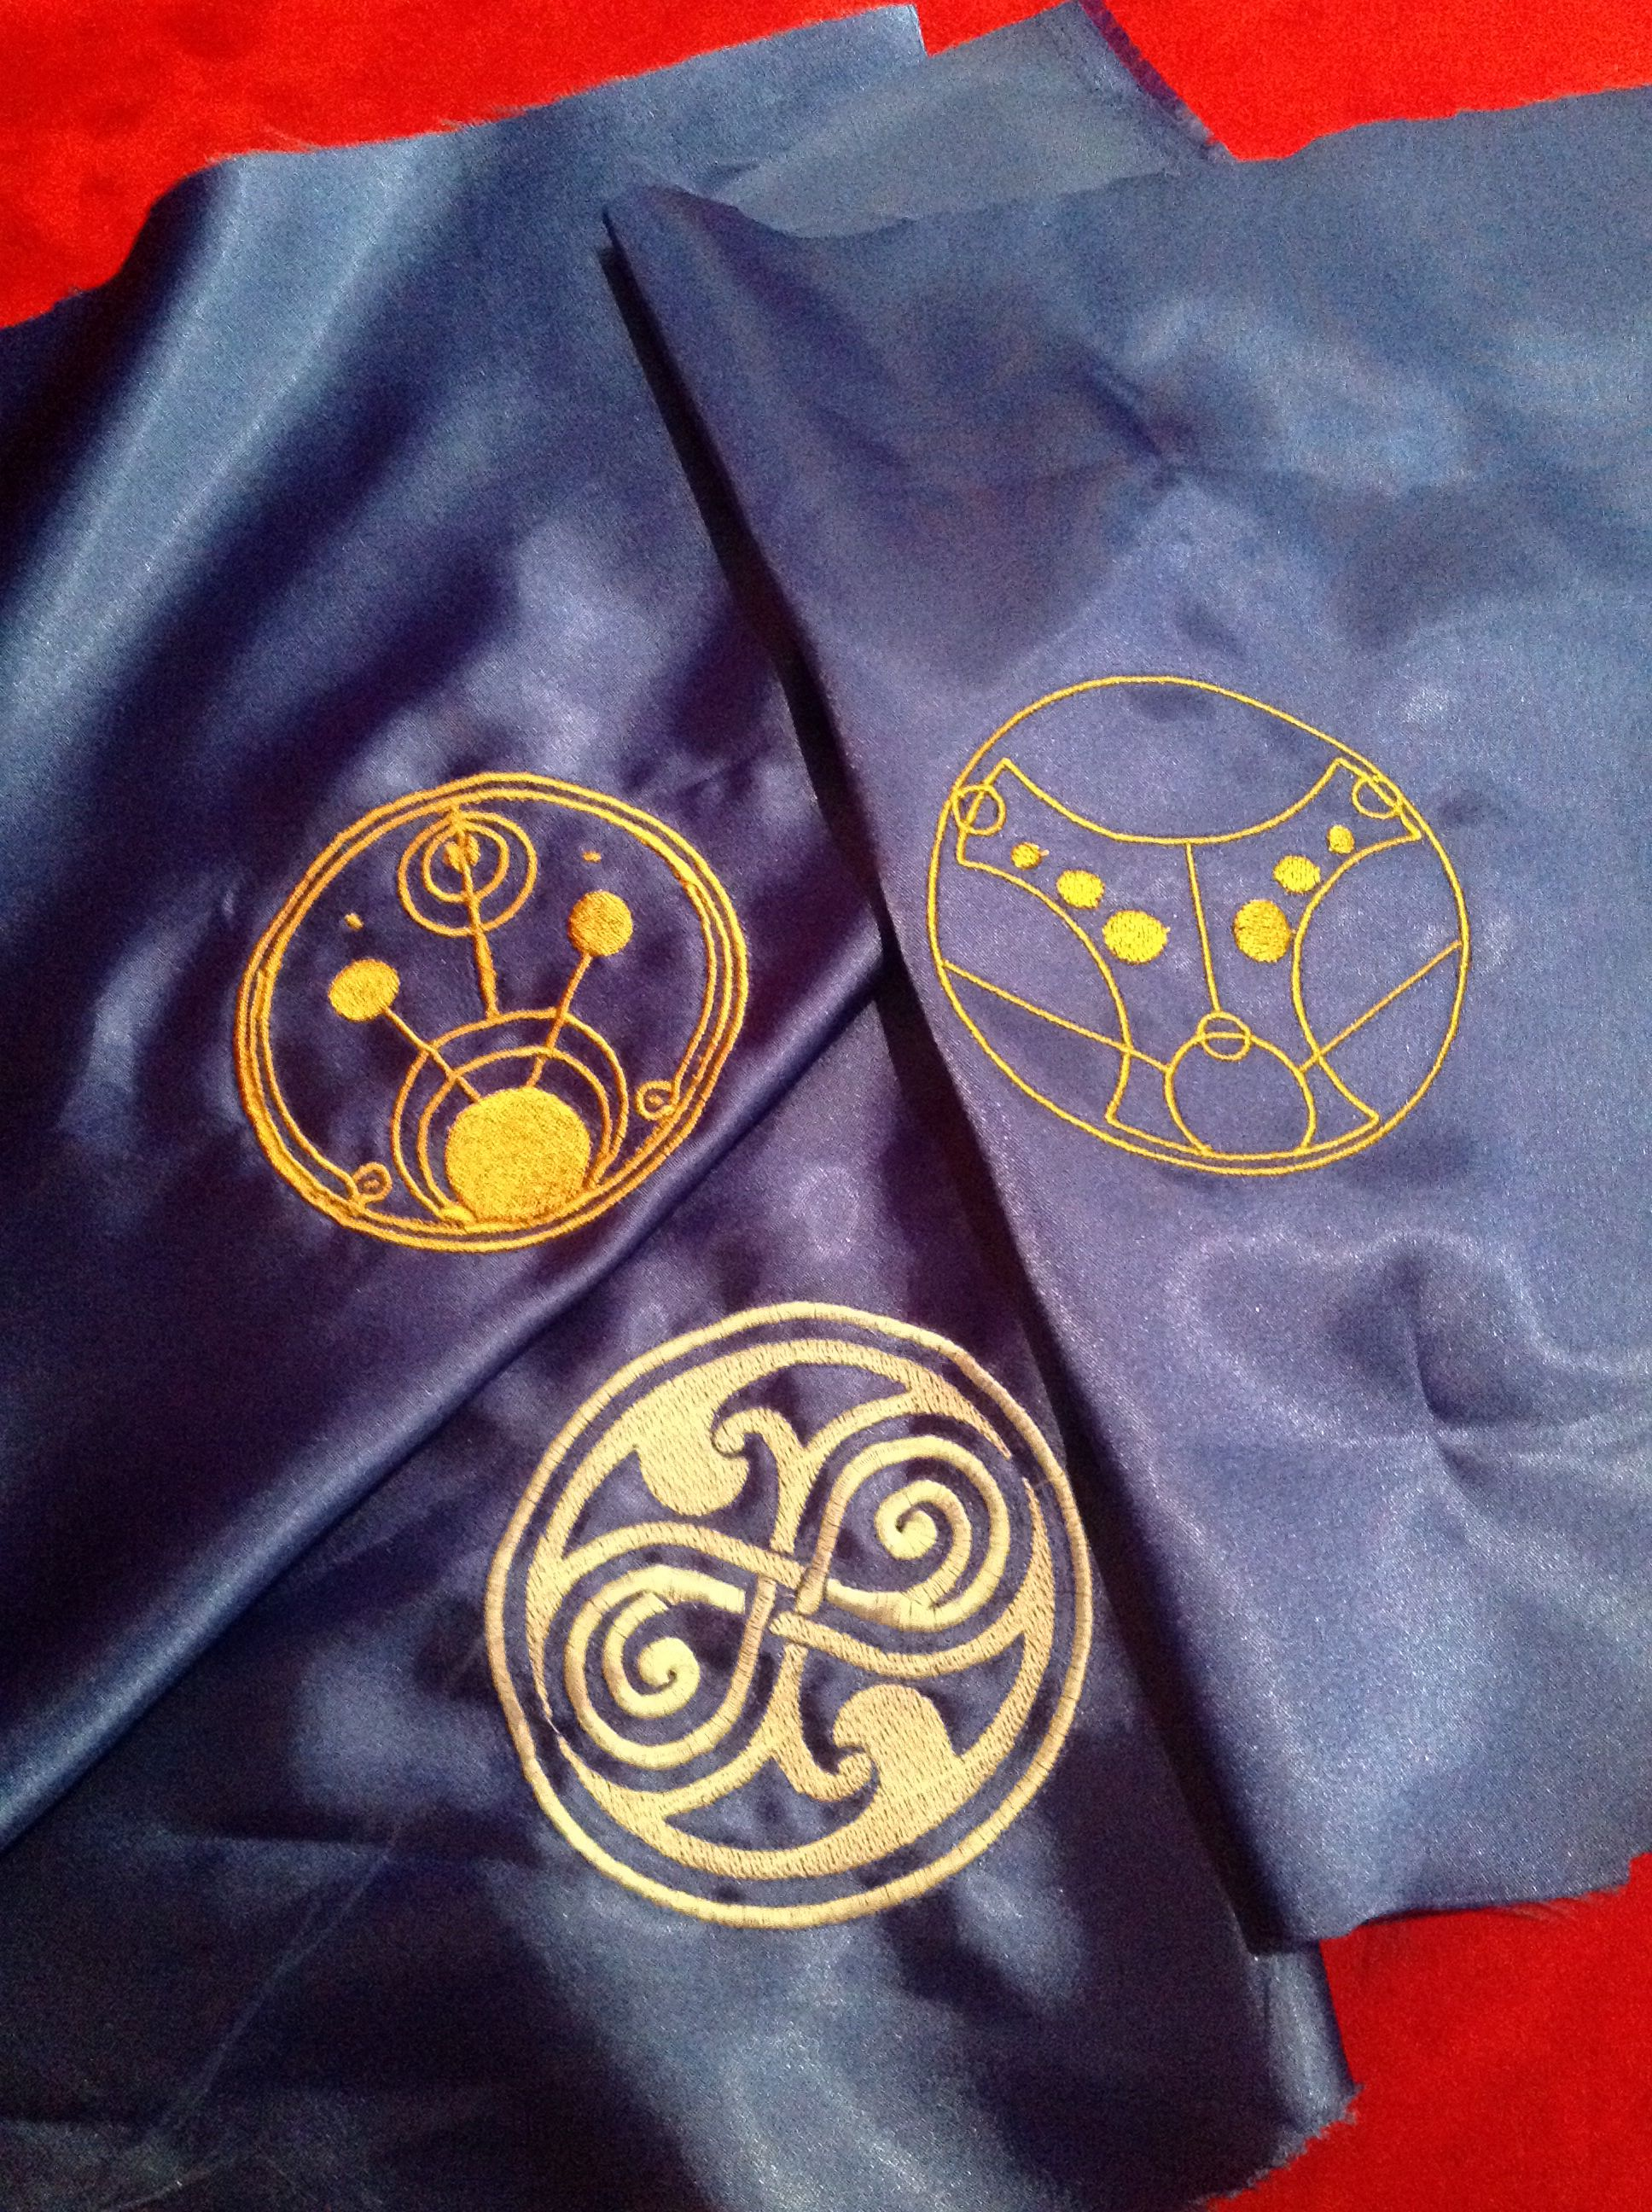 Galifreyian symbols embroidered on Satin for a Tardis